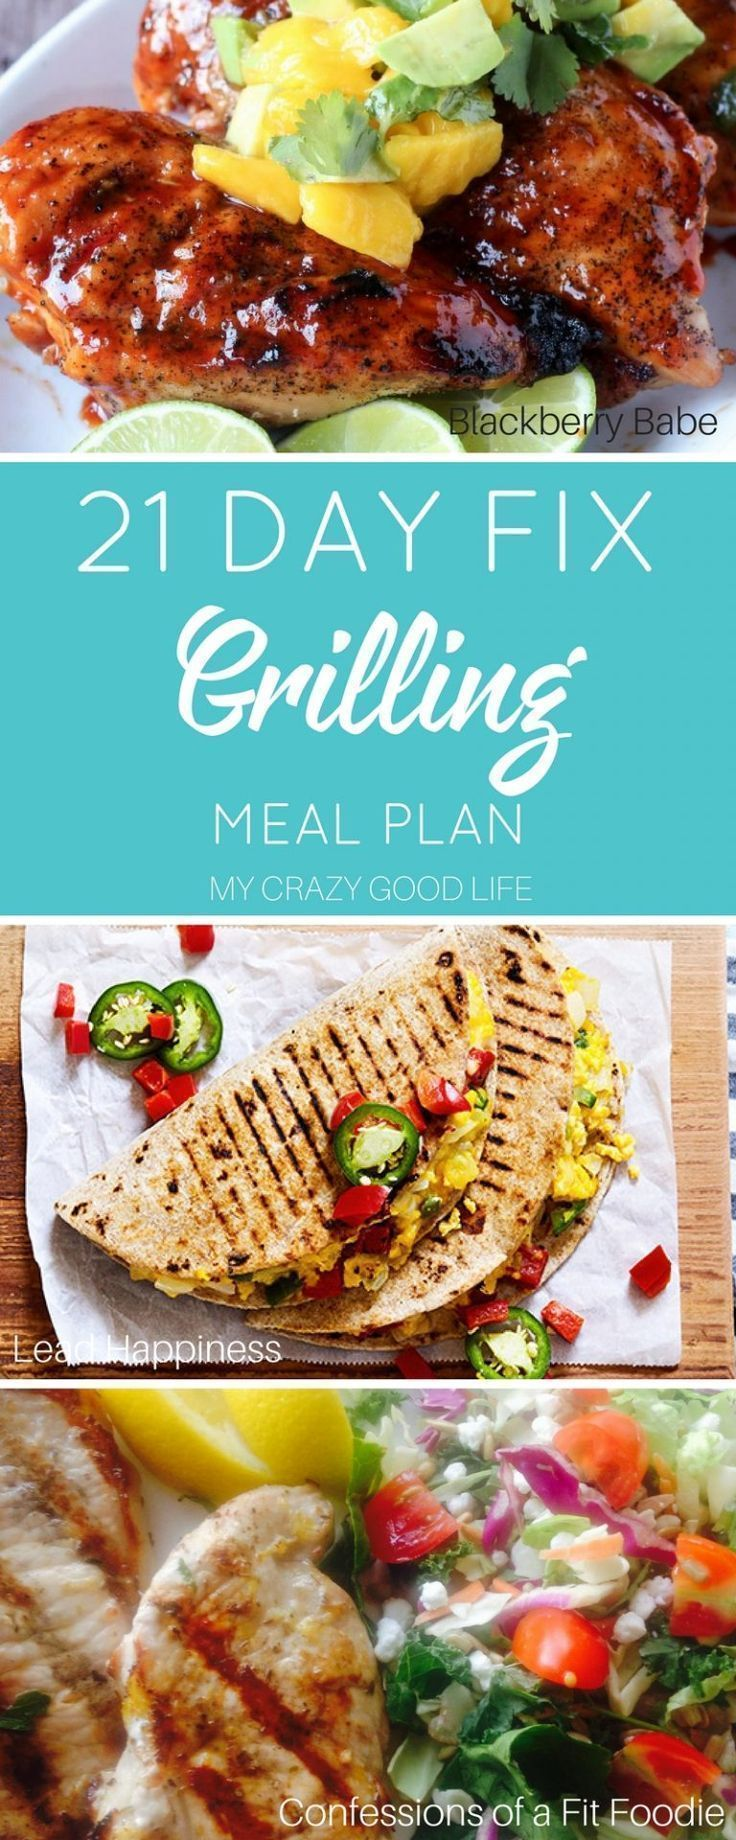 Summer is here and that means it is time to break out the 21 Day Fix grill recipes. You can pick and choose items from this 21 Day Fix grilling meal plan!